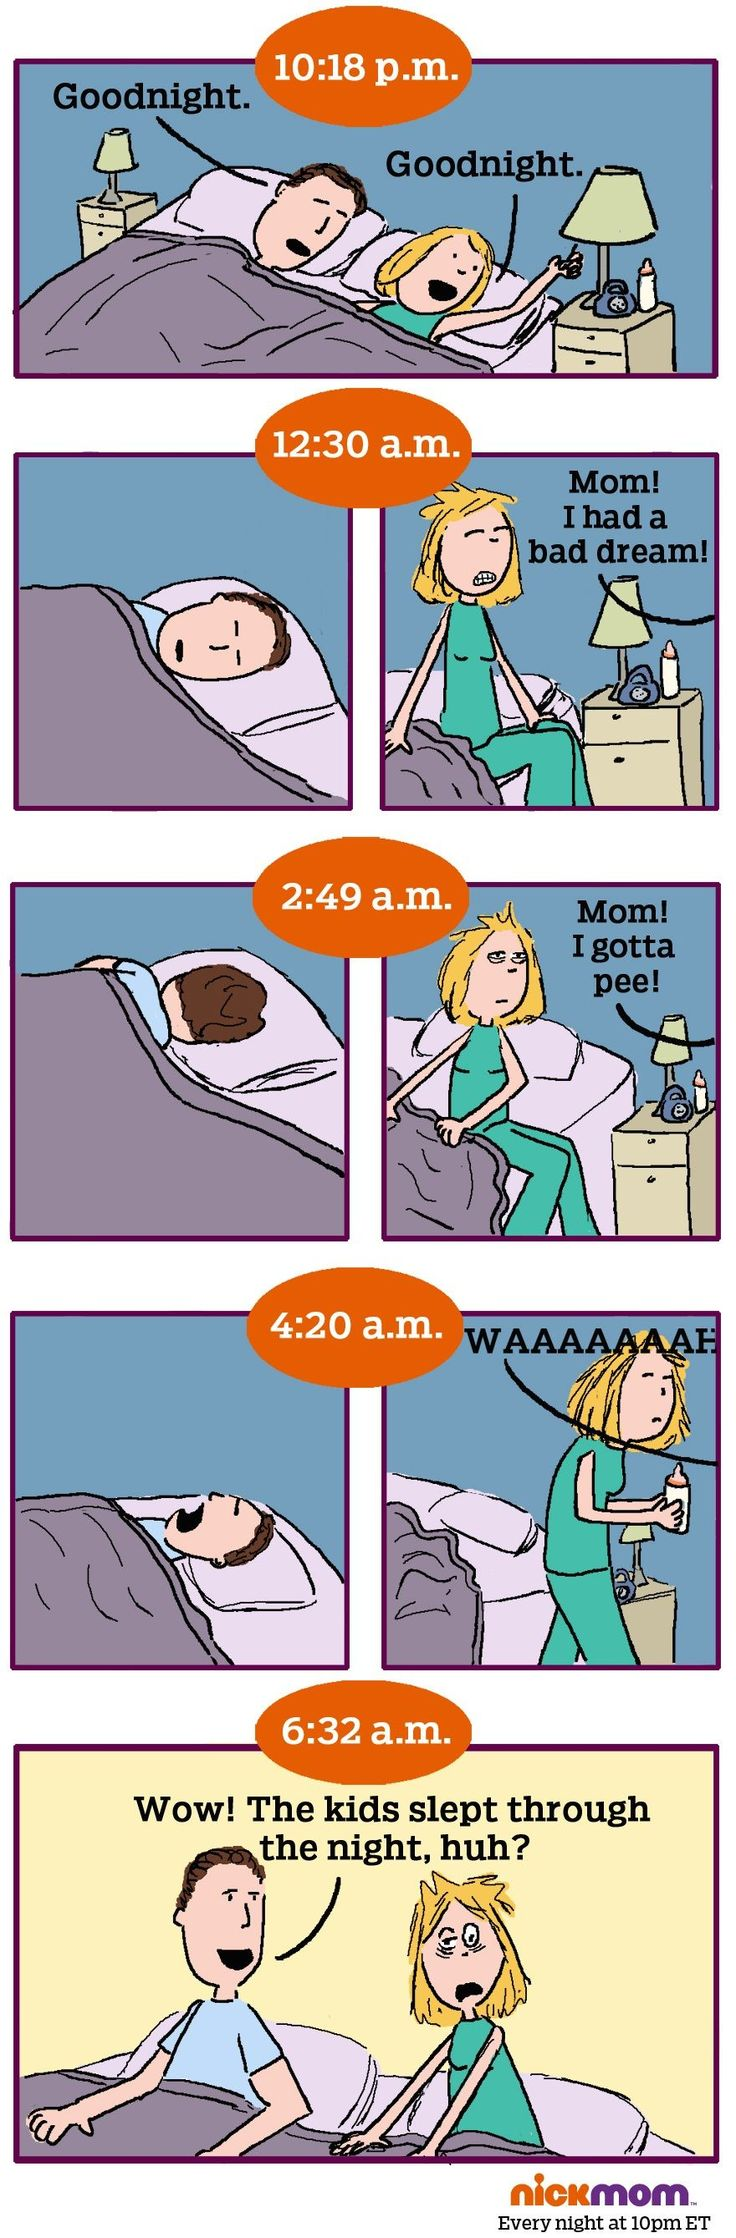 Check out this funny cartoon about kids sleeping through the night on NickMom.com!